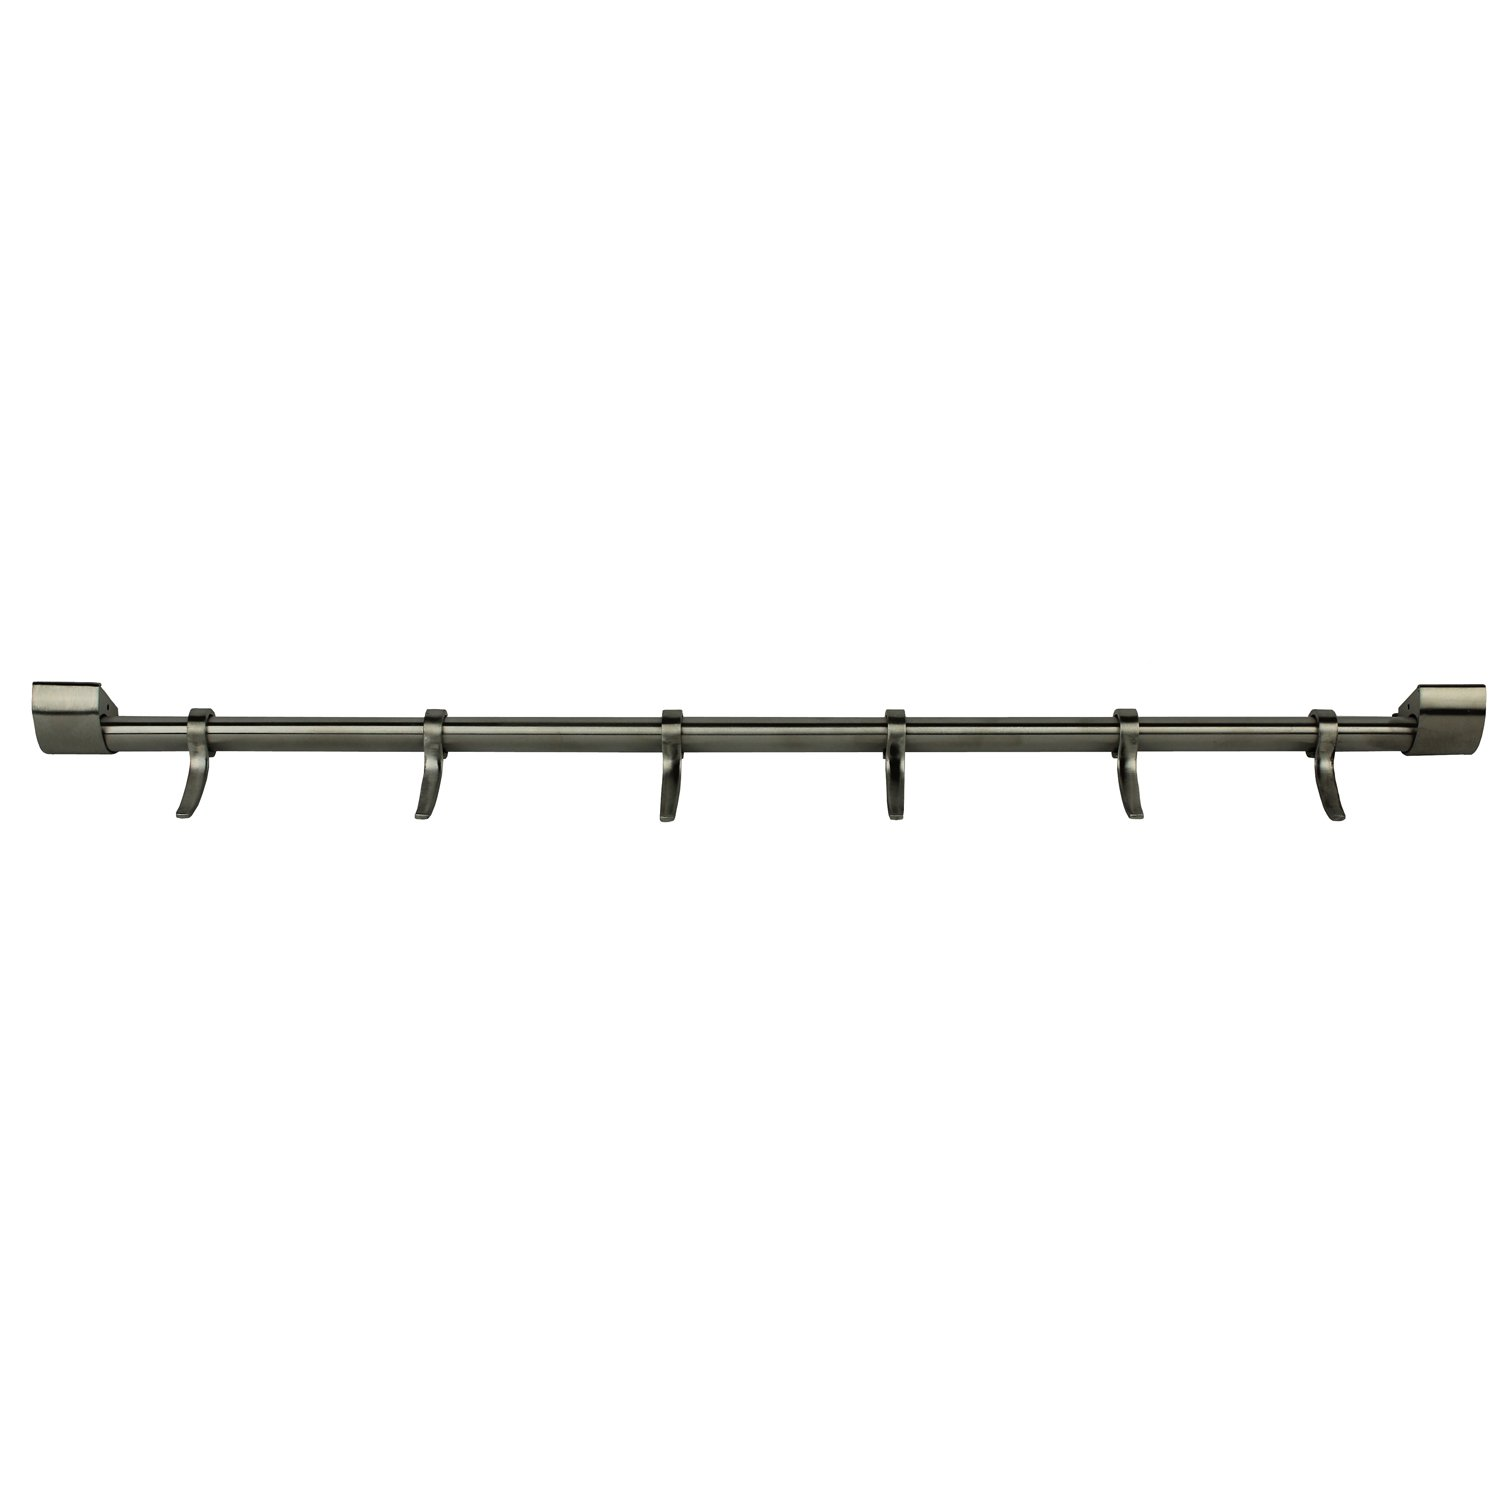 TheraBand Resistance Band Accessory Rack for Wellness Station, Holds TheraBand Resistance Bands and Wellness Station Accessories for Convenient Use, Mount to Wall for Simple and Organized Storage